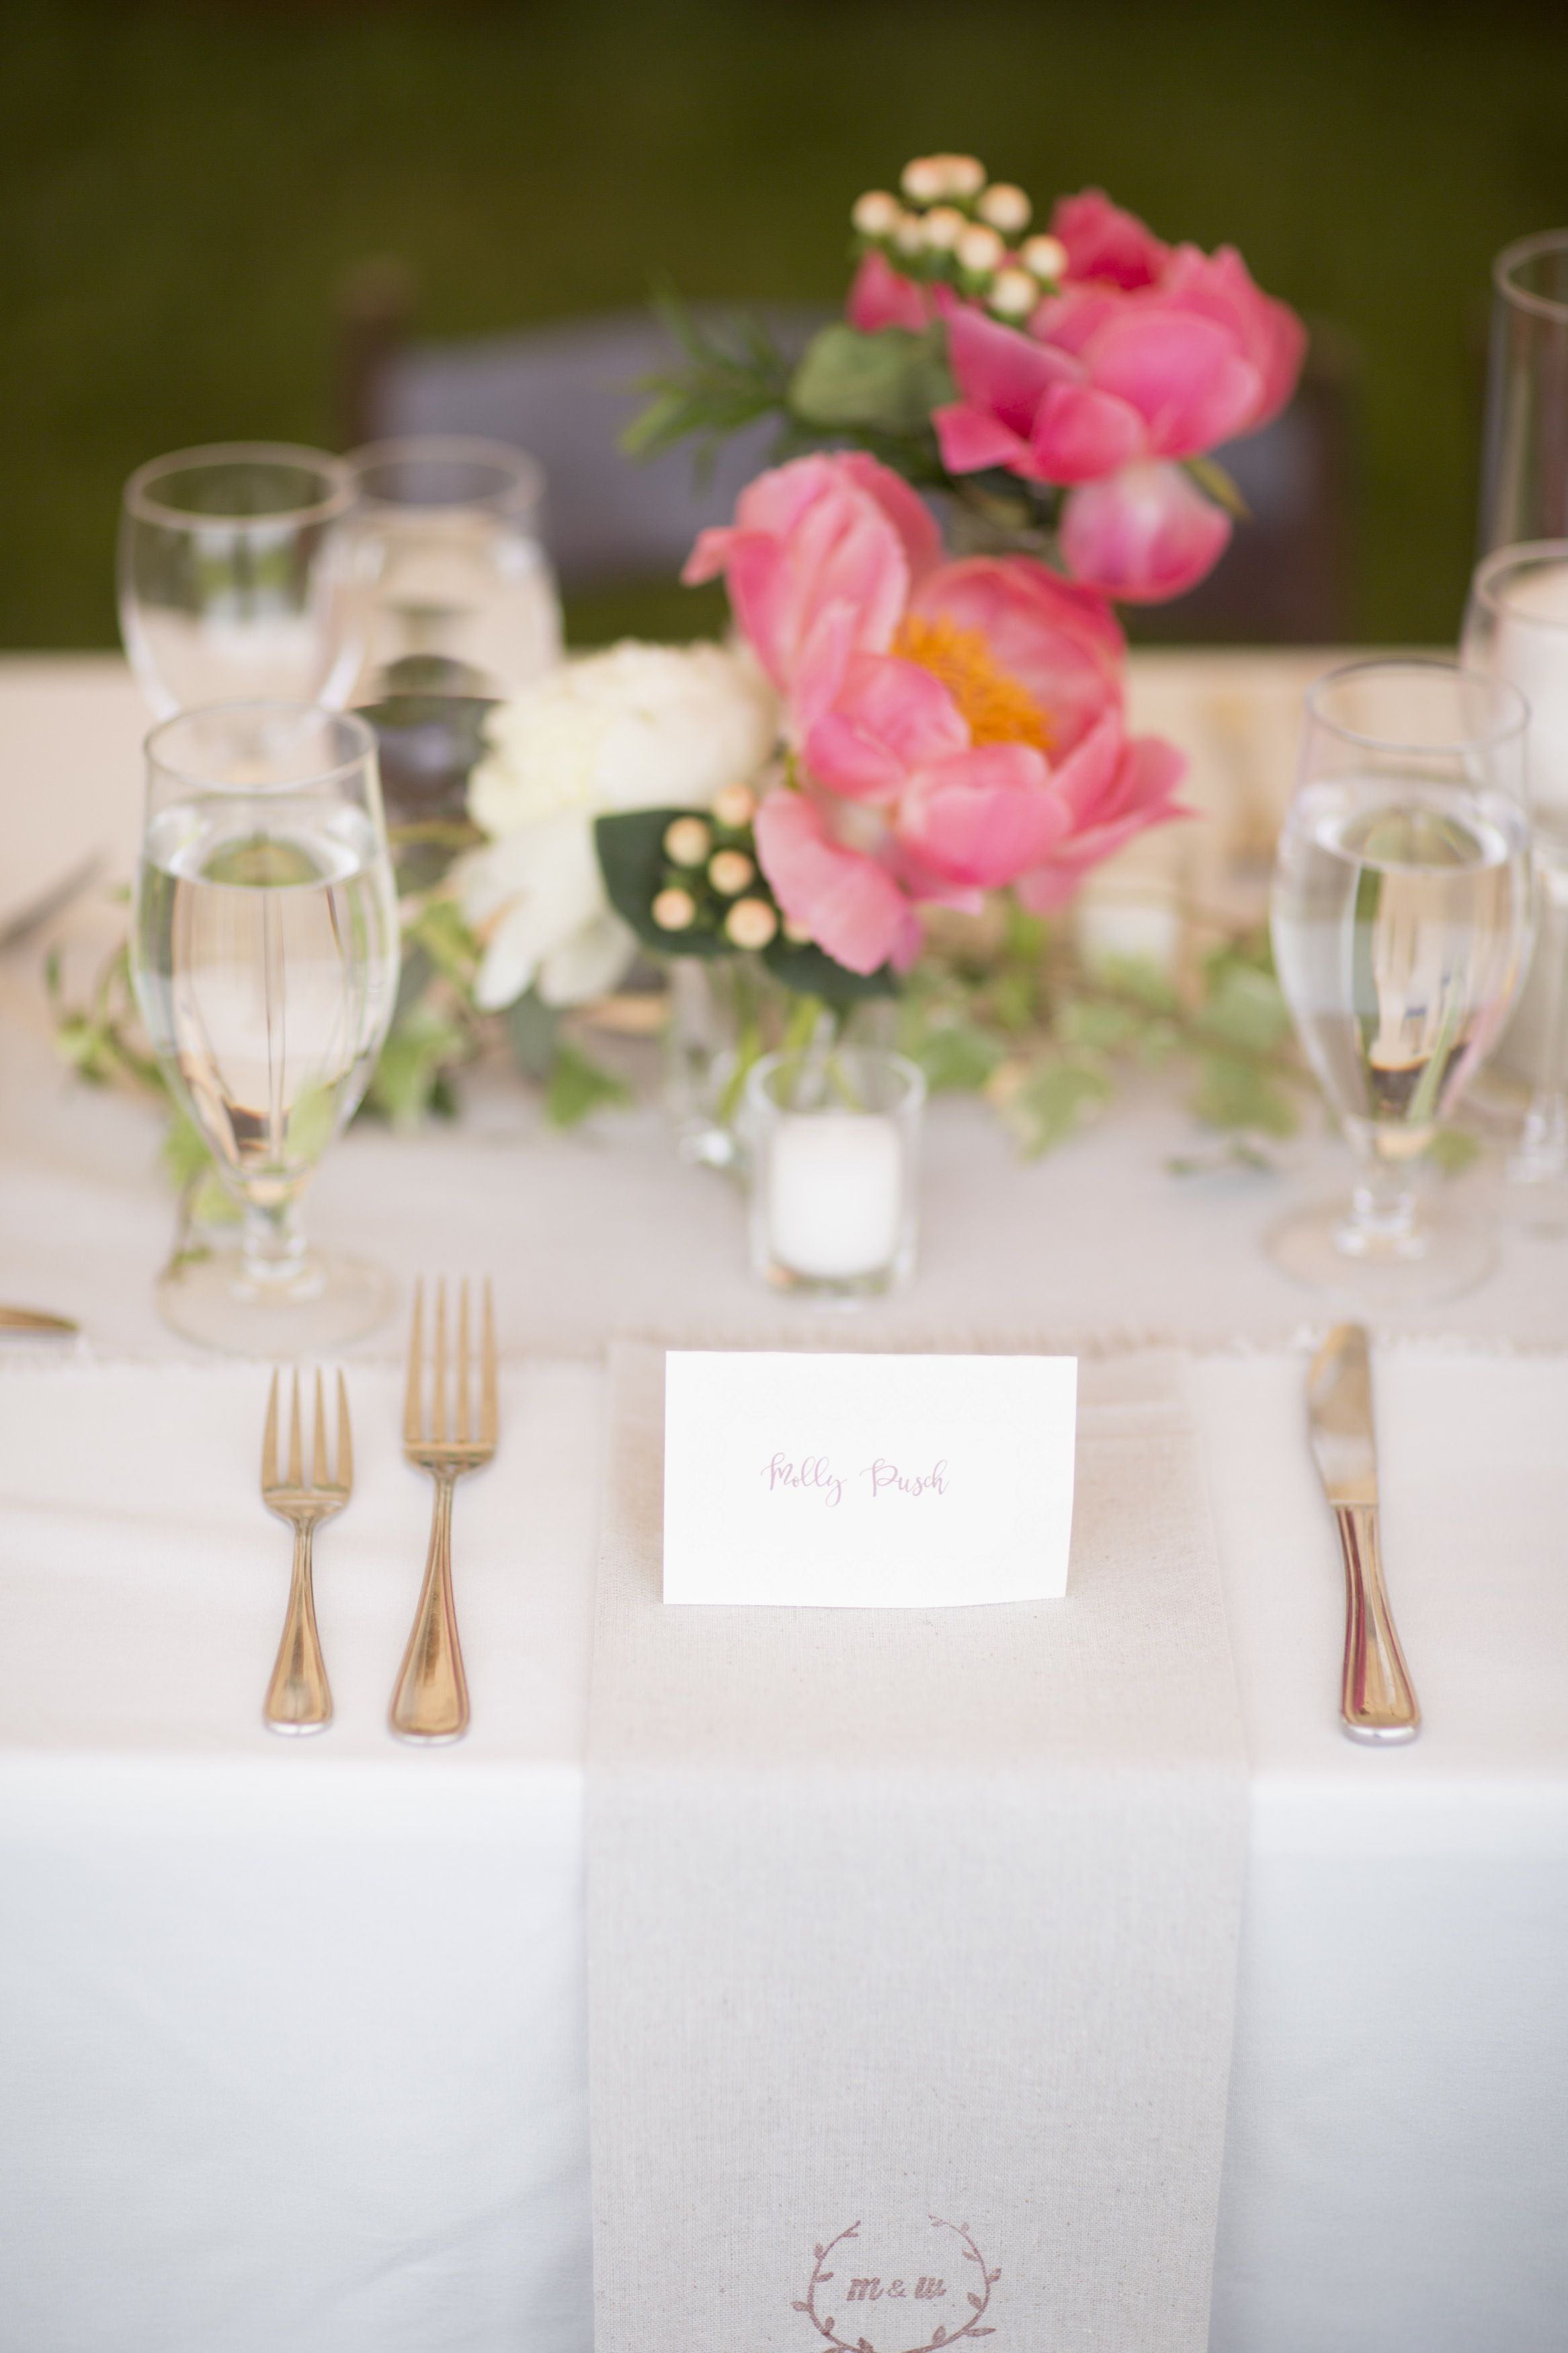 How much does wedding videography cost? Wedding